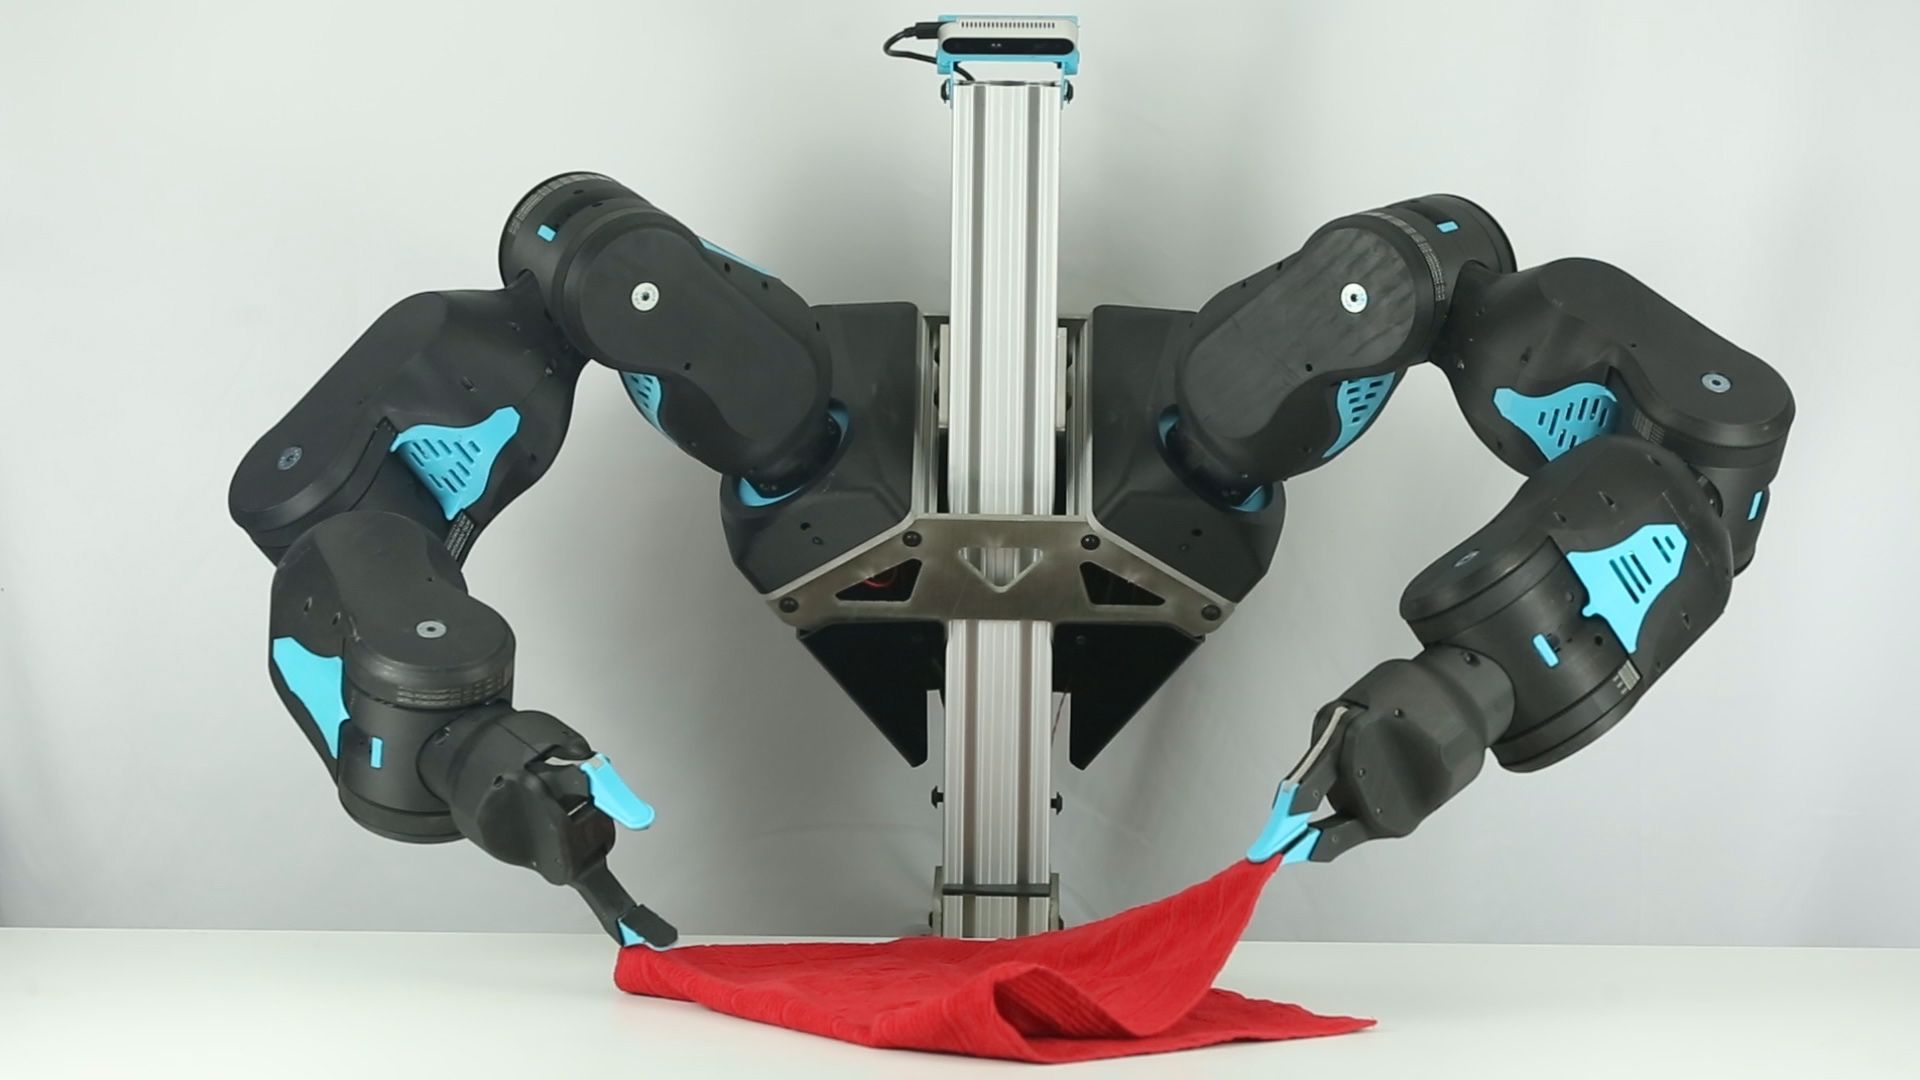 Under teleoperation control, 2-armed version of Blue robot folds a red towel